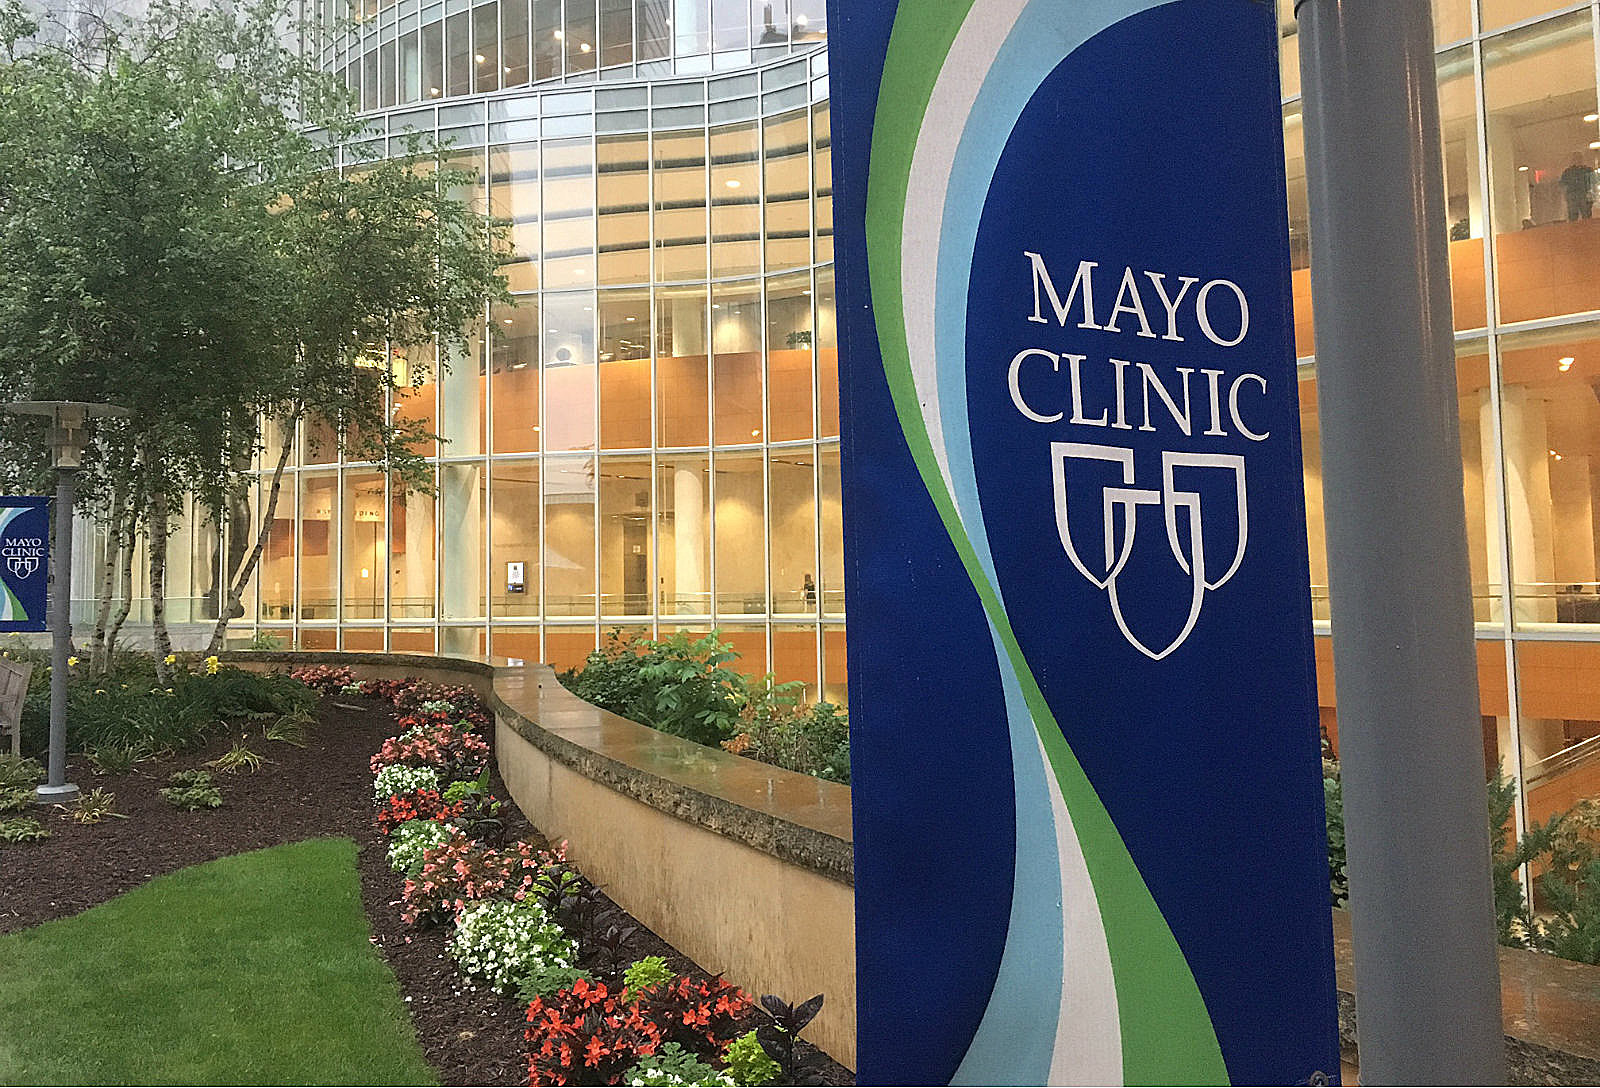 is the mayo clinic diet a keto diet?